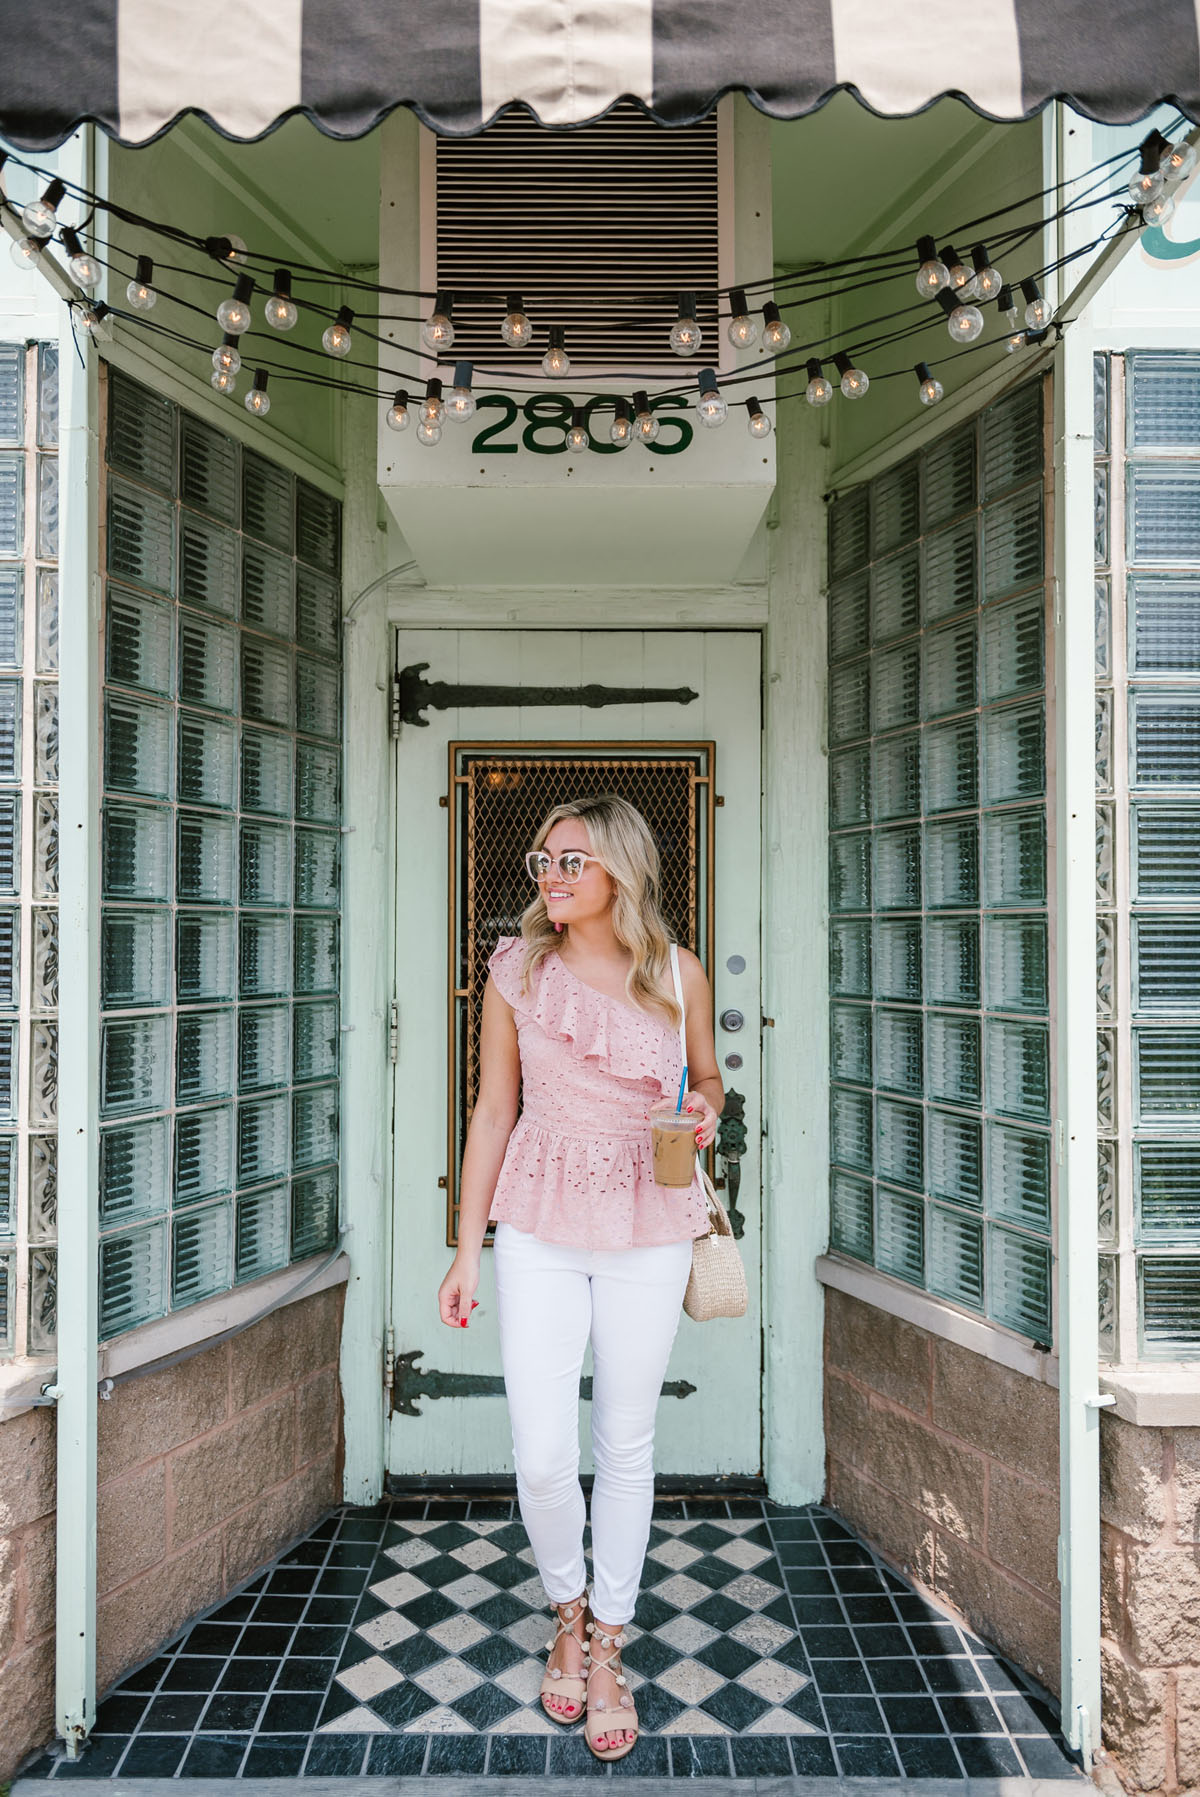 Bows & Sequins wearing a J.O.A. pink peplum top, Old Navy white denim, heeled pom pom sandals, and a Clare V straw crossbody bag.